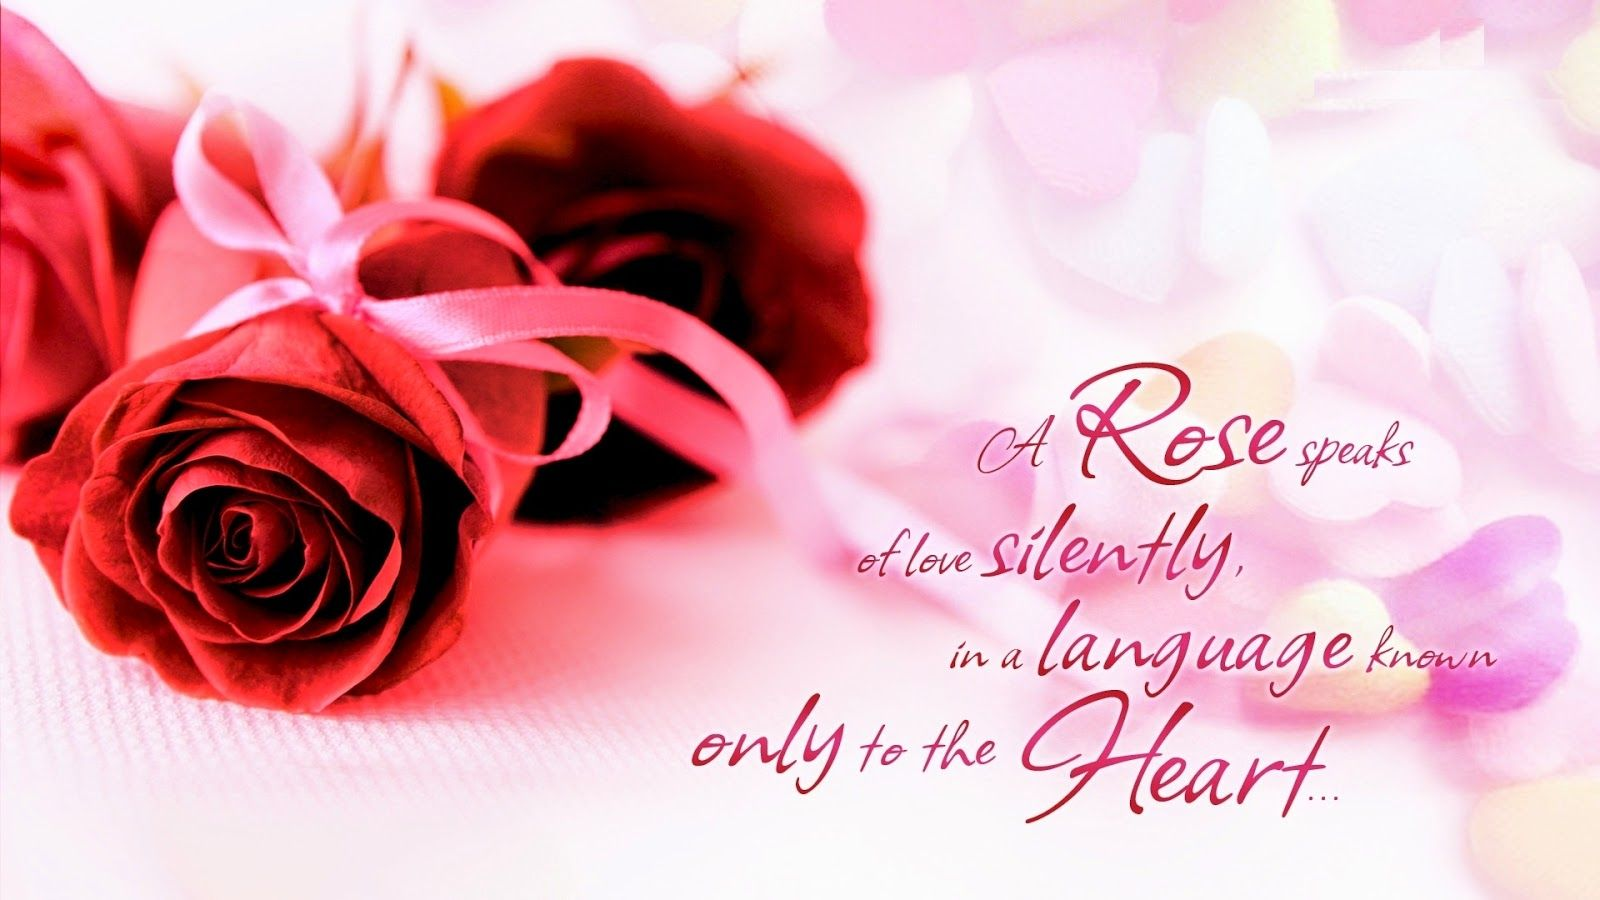 quotes cards flowers in images of love flowers with quotes